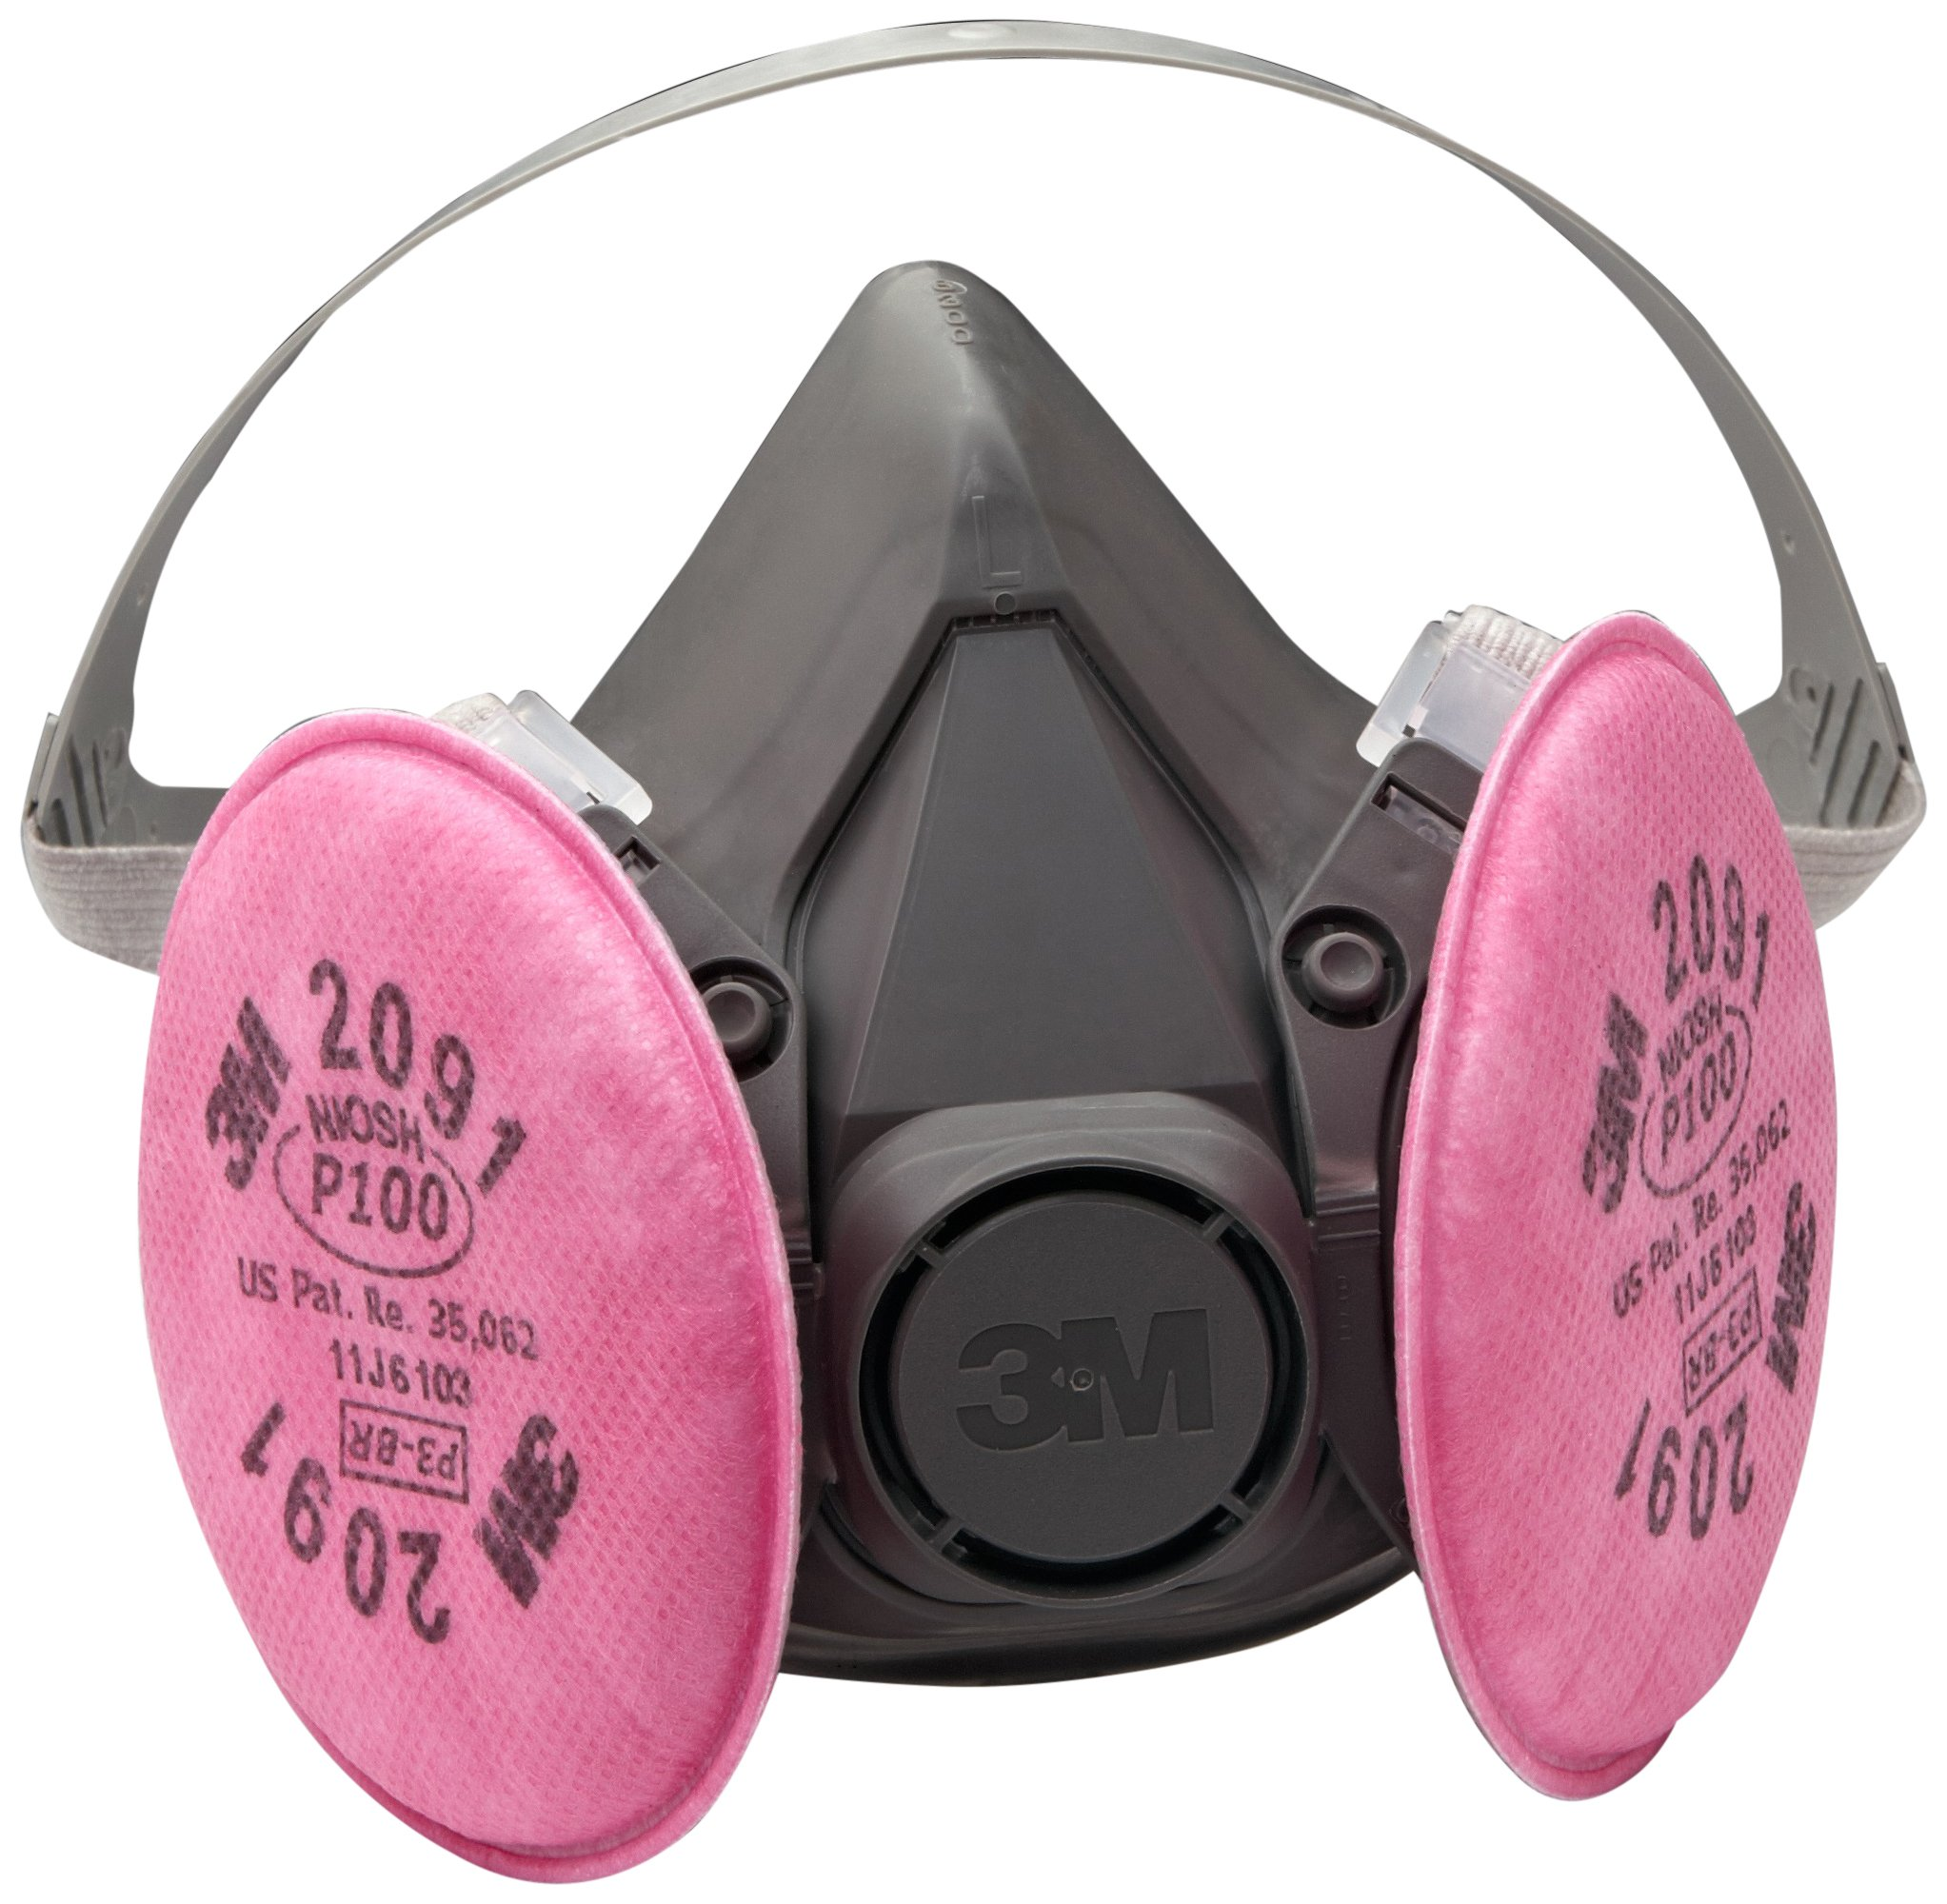 3M Half Facepiece Reusable Respirator Assembly 6391/07003(AAD), Large, P100 Respiratory Protection by 3M